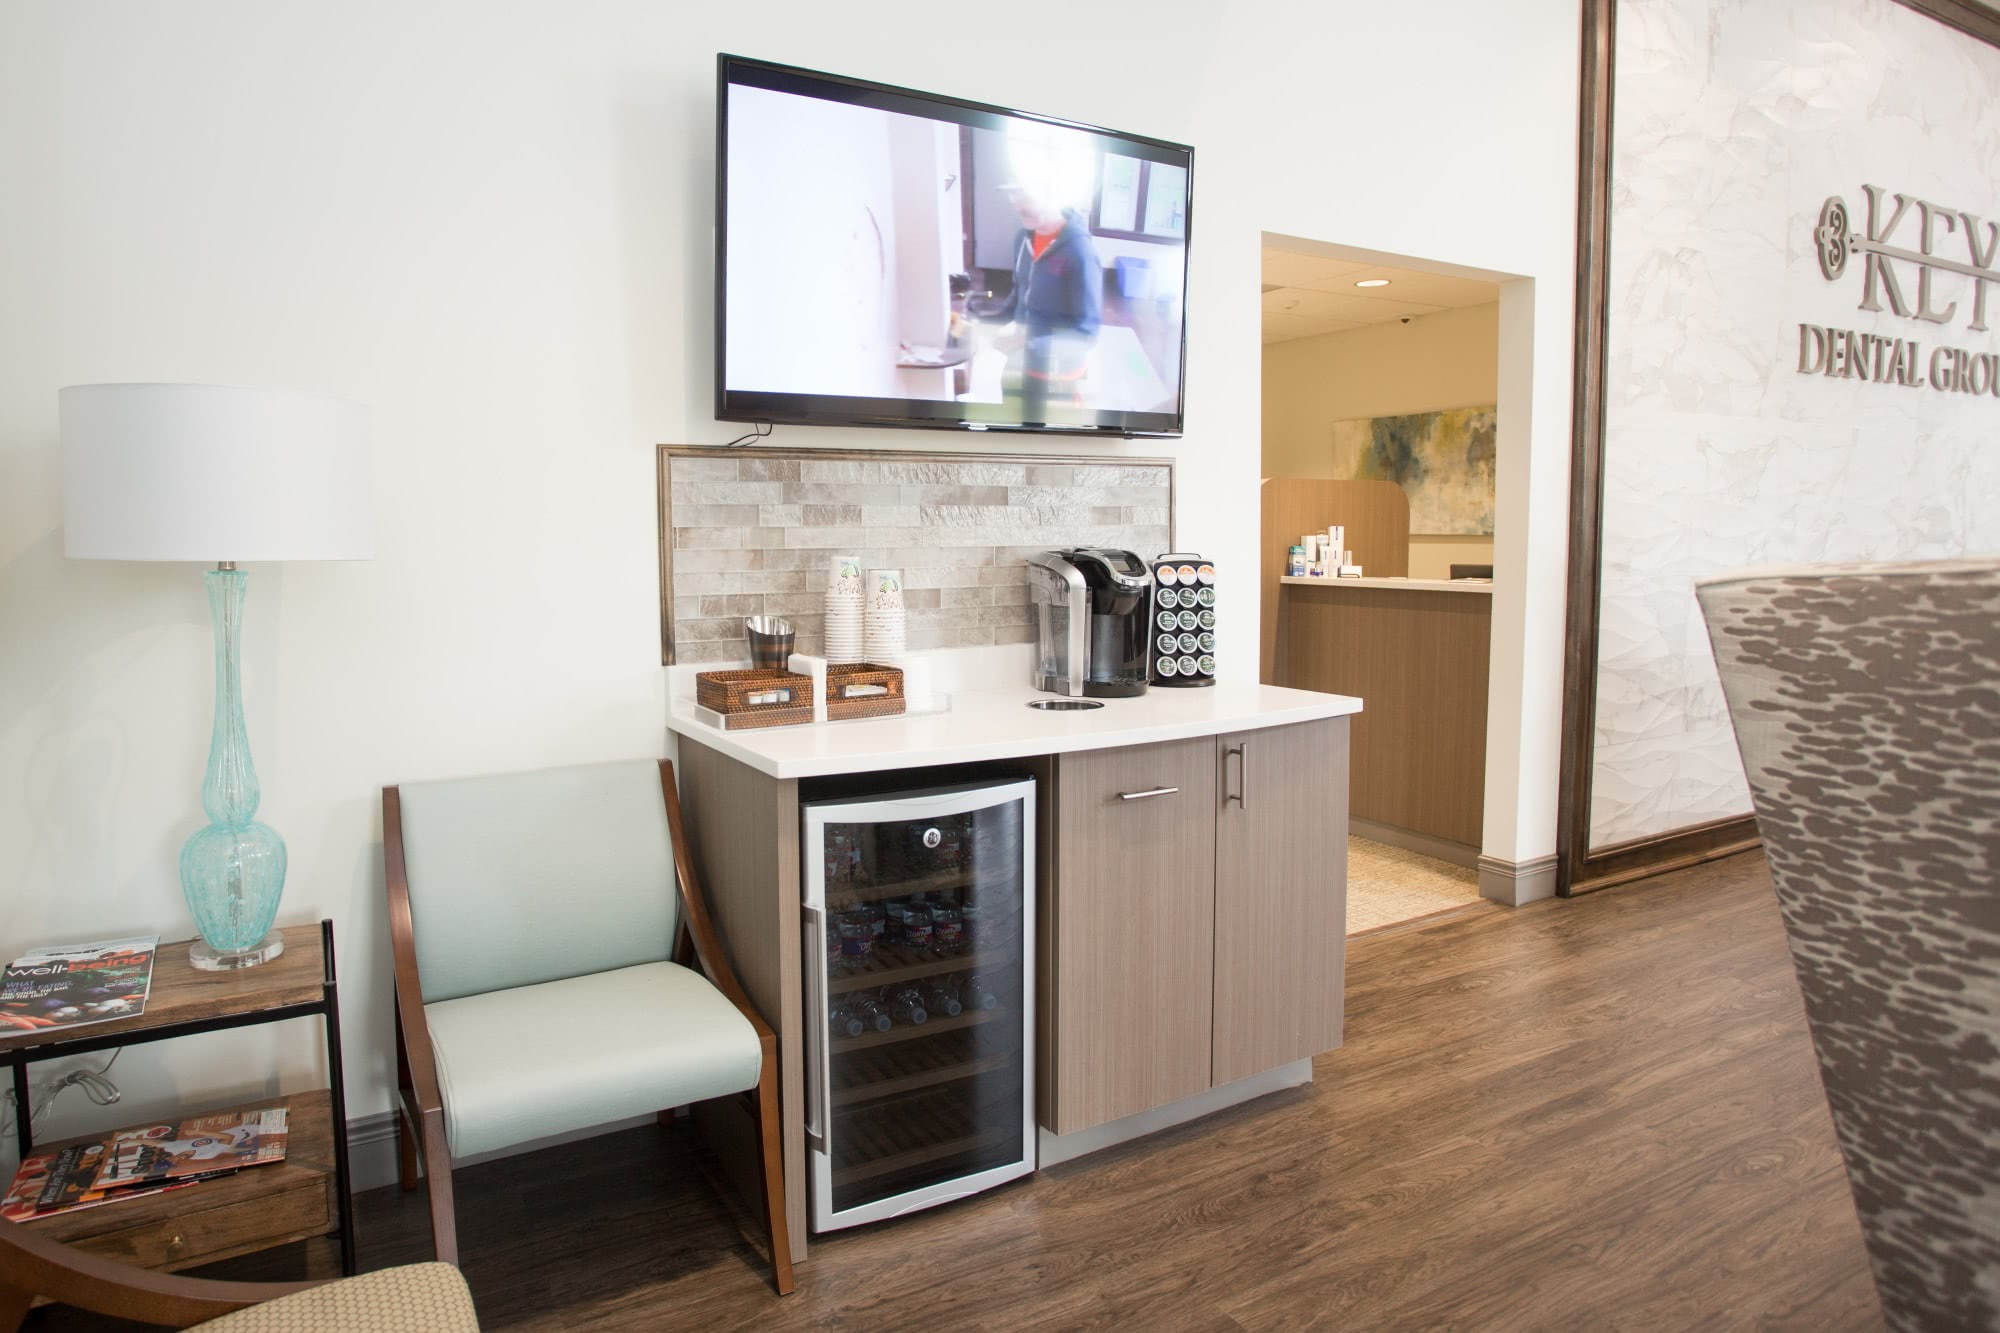 collins-j_patient-amenities_1